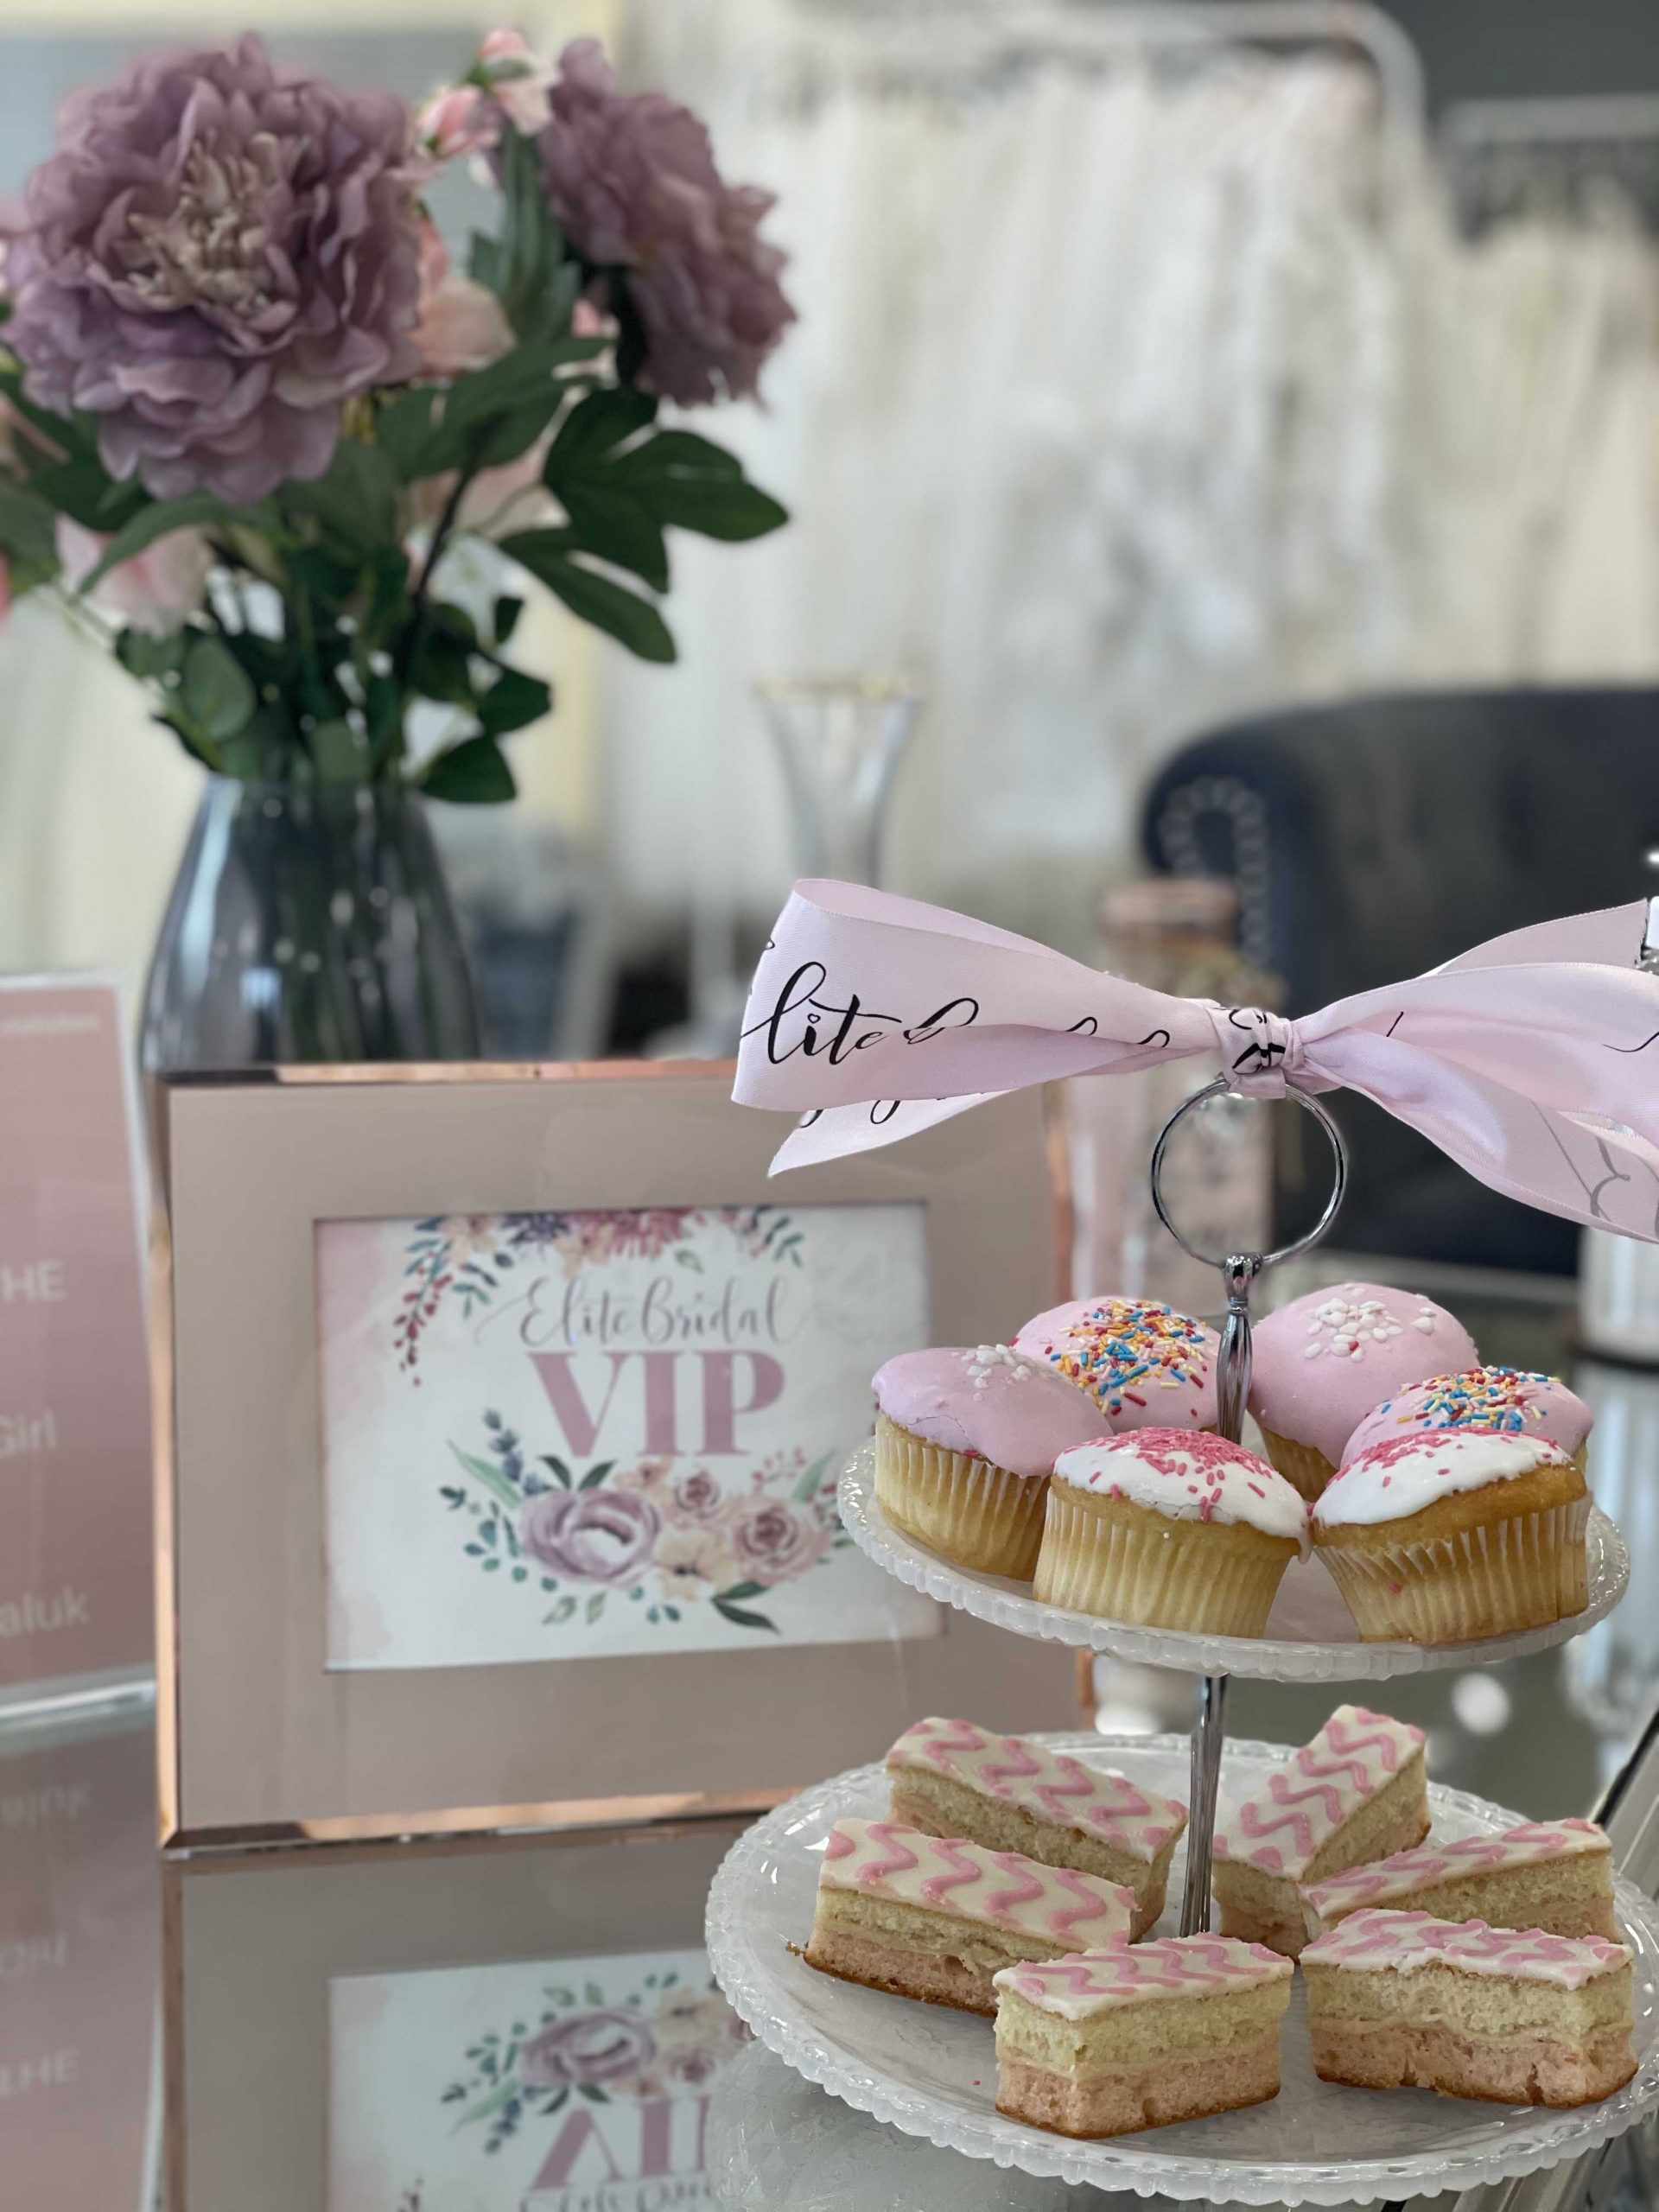 vip-appointments-elite-bridal4